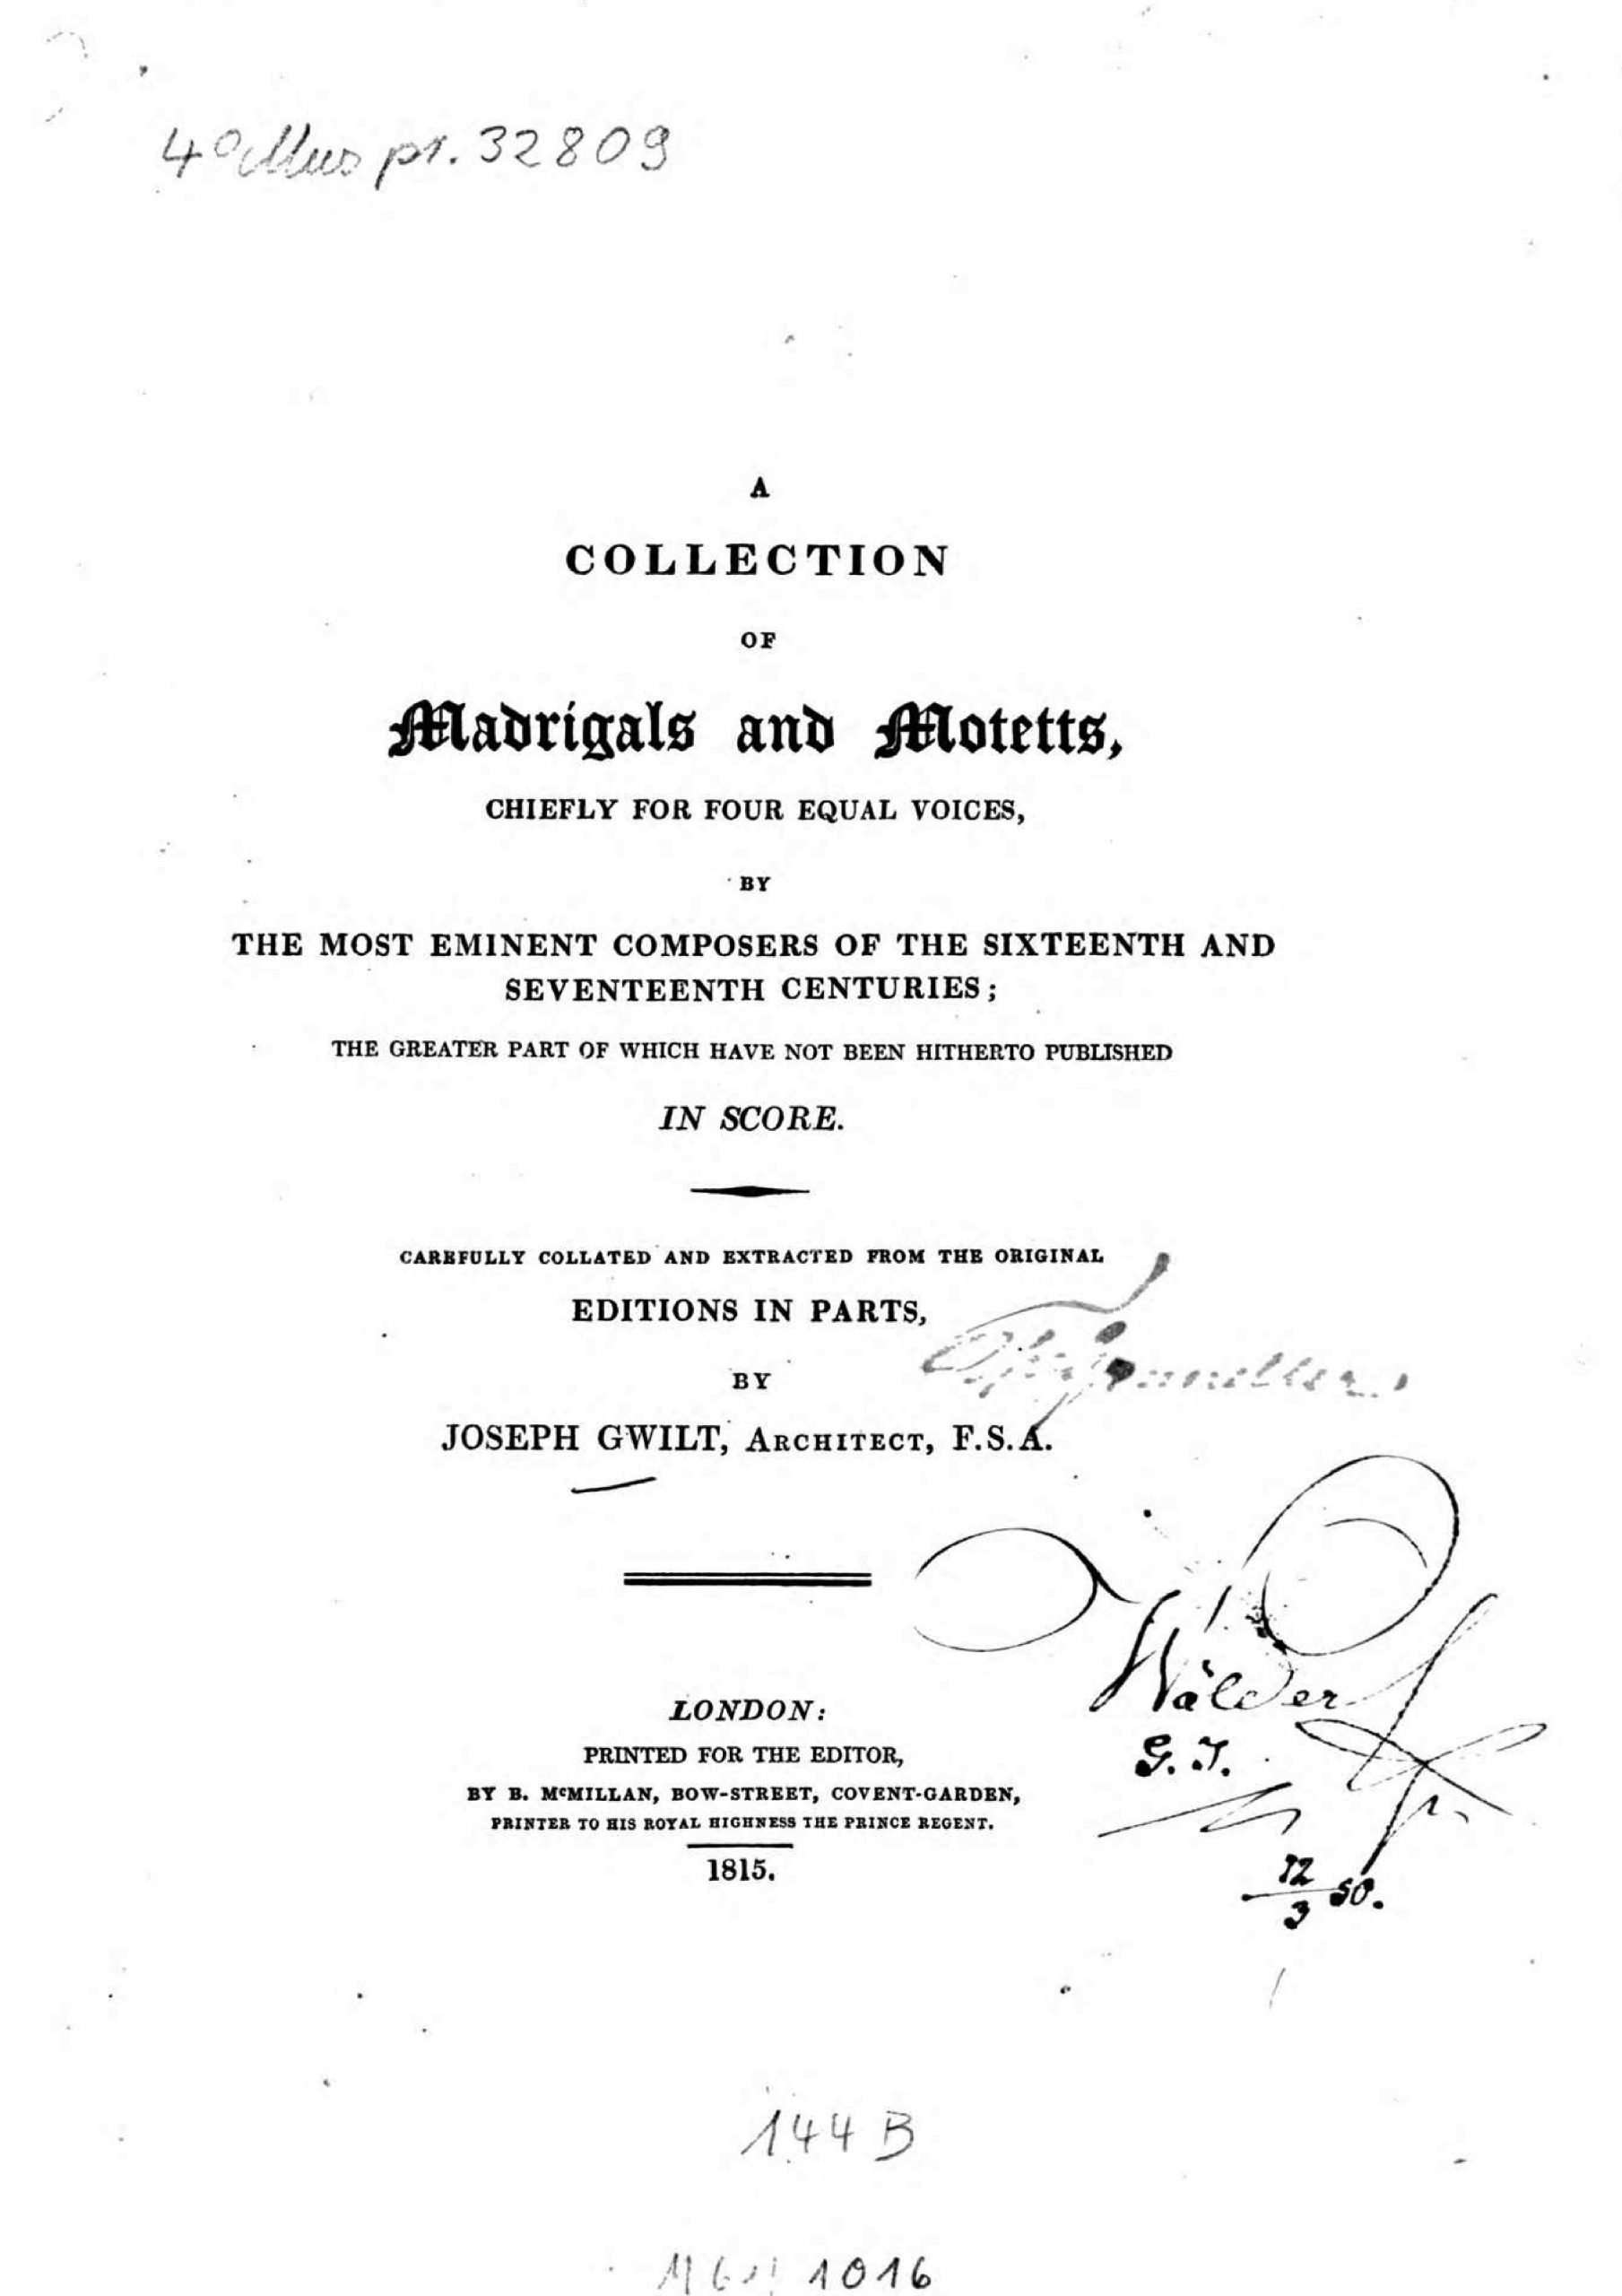 Gwilt, Joseph - A Collection of Madrigals and Motetts